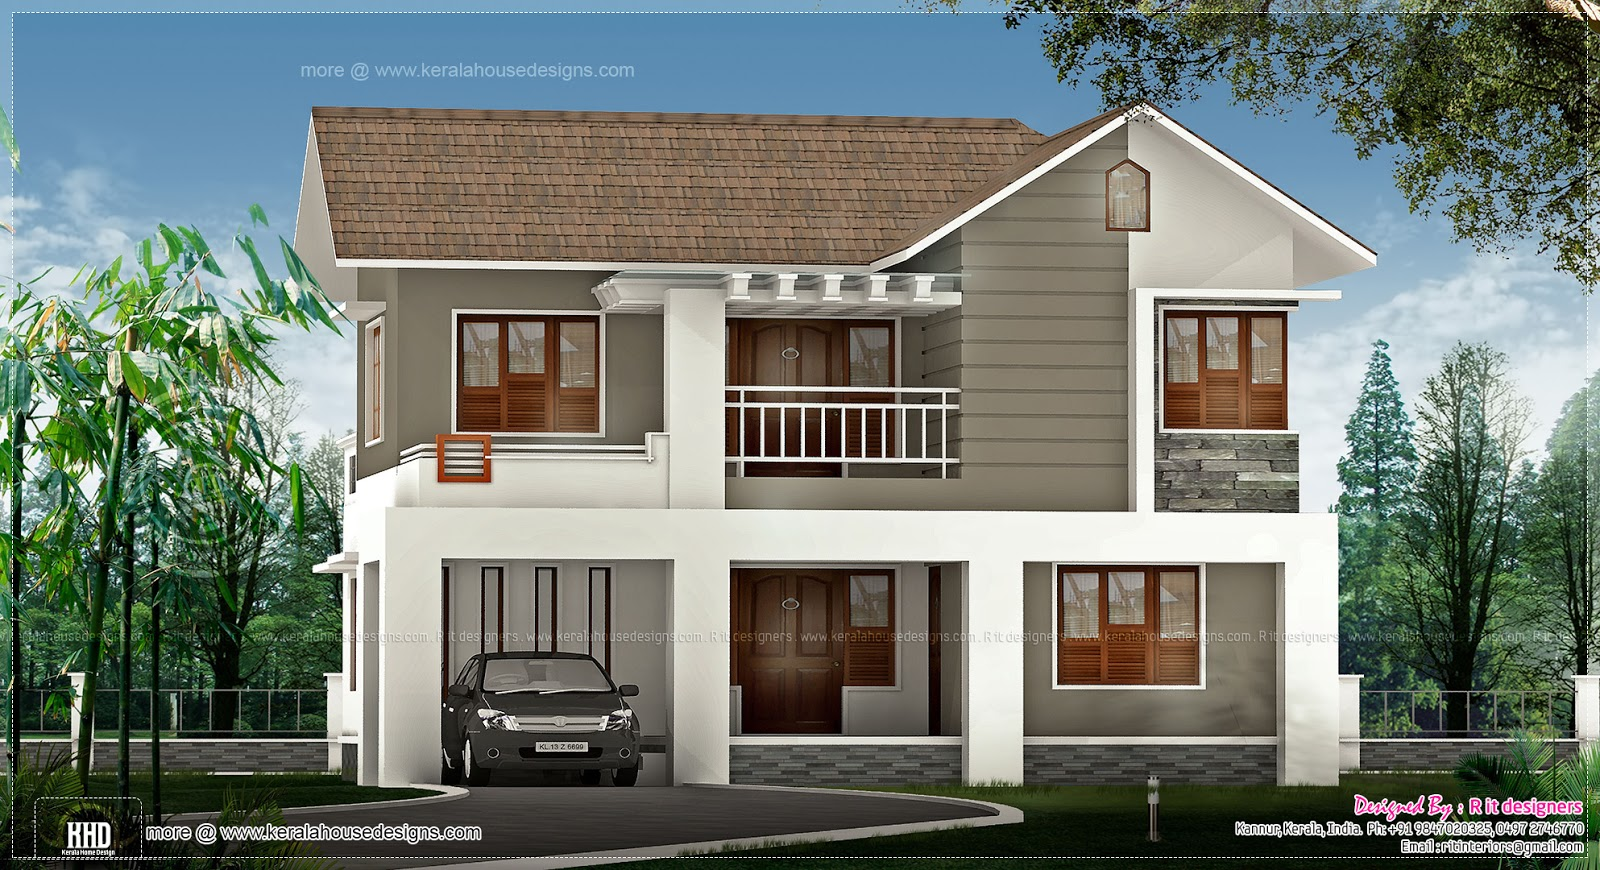 House plans and design house plans in kerala with price for House designs with price